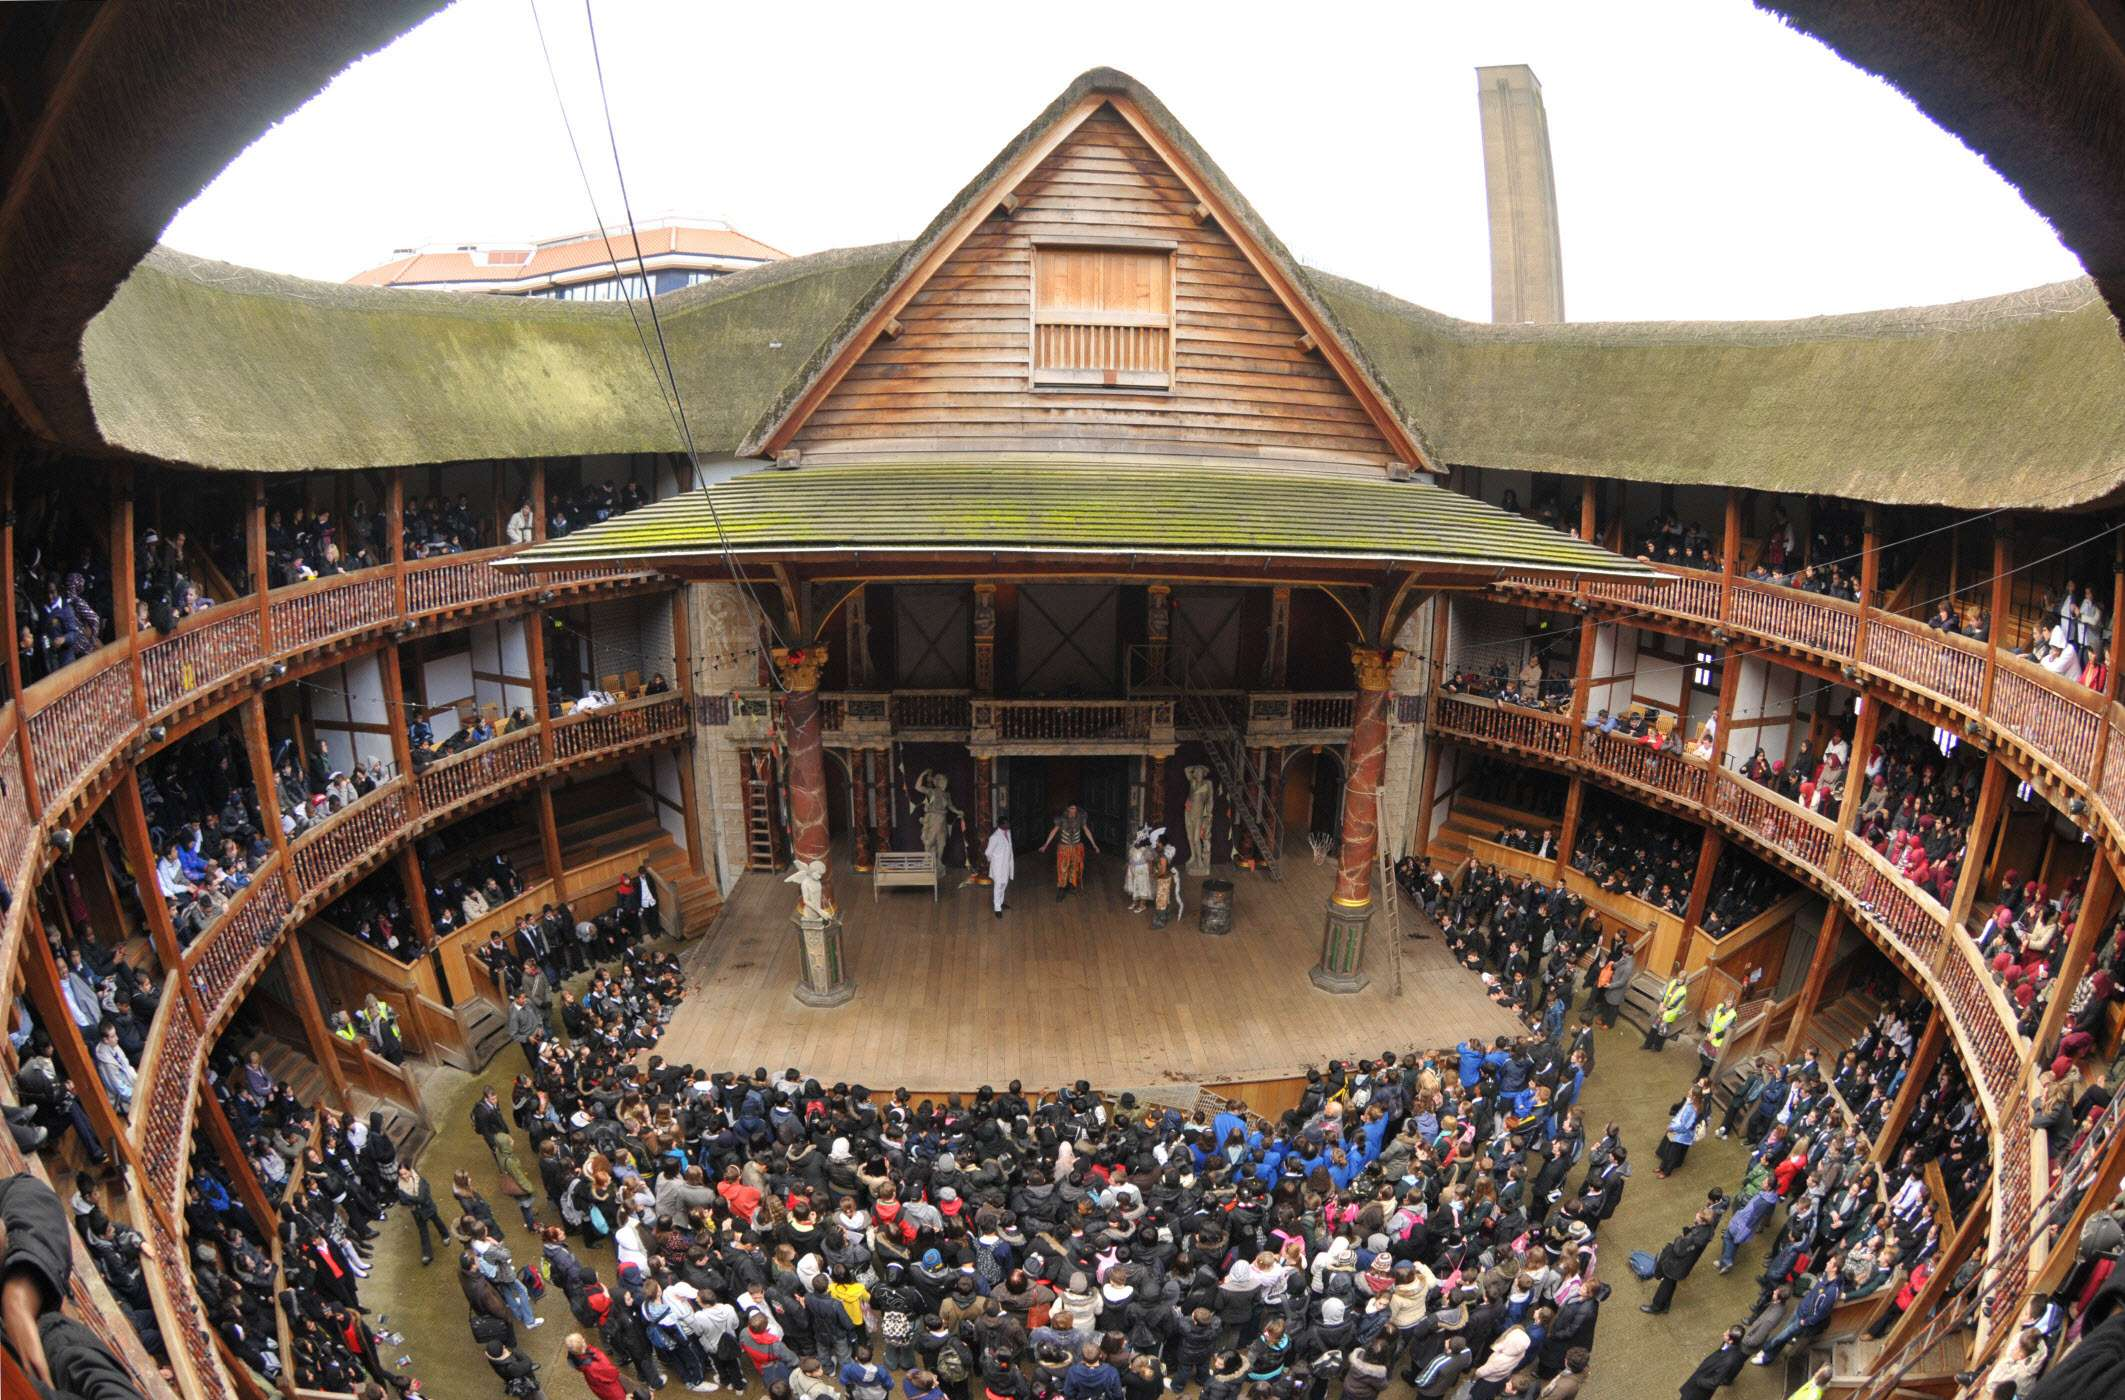 Shakespeare's Globe, the modern reconstruction of the Globe Theatre.